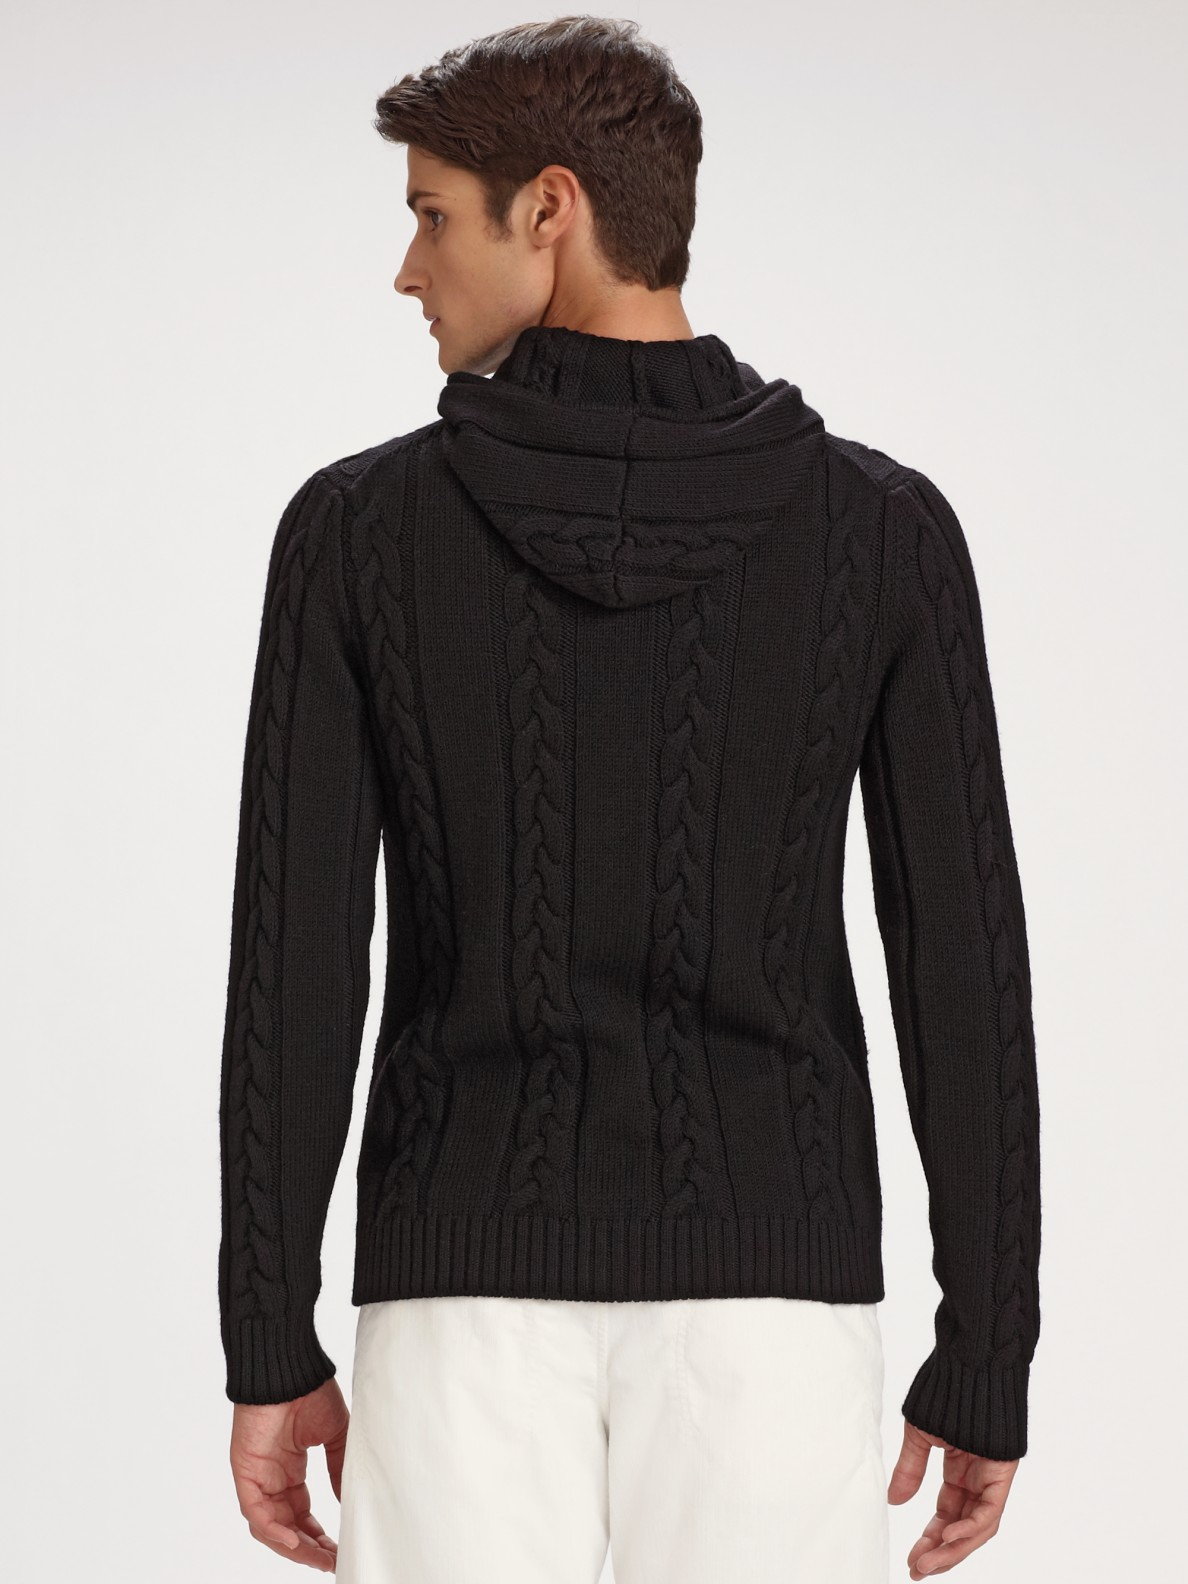 Armani Cable Hoodie Sweater in Black for Men | Lyst